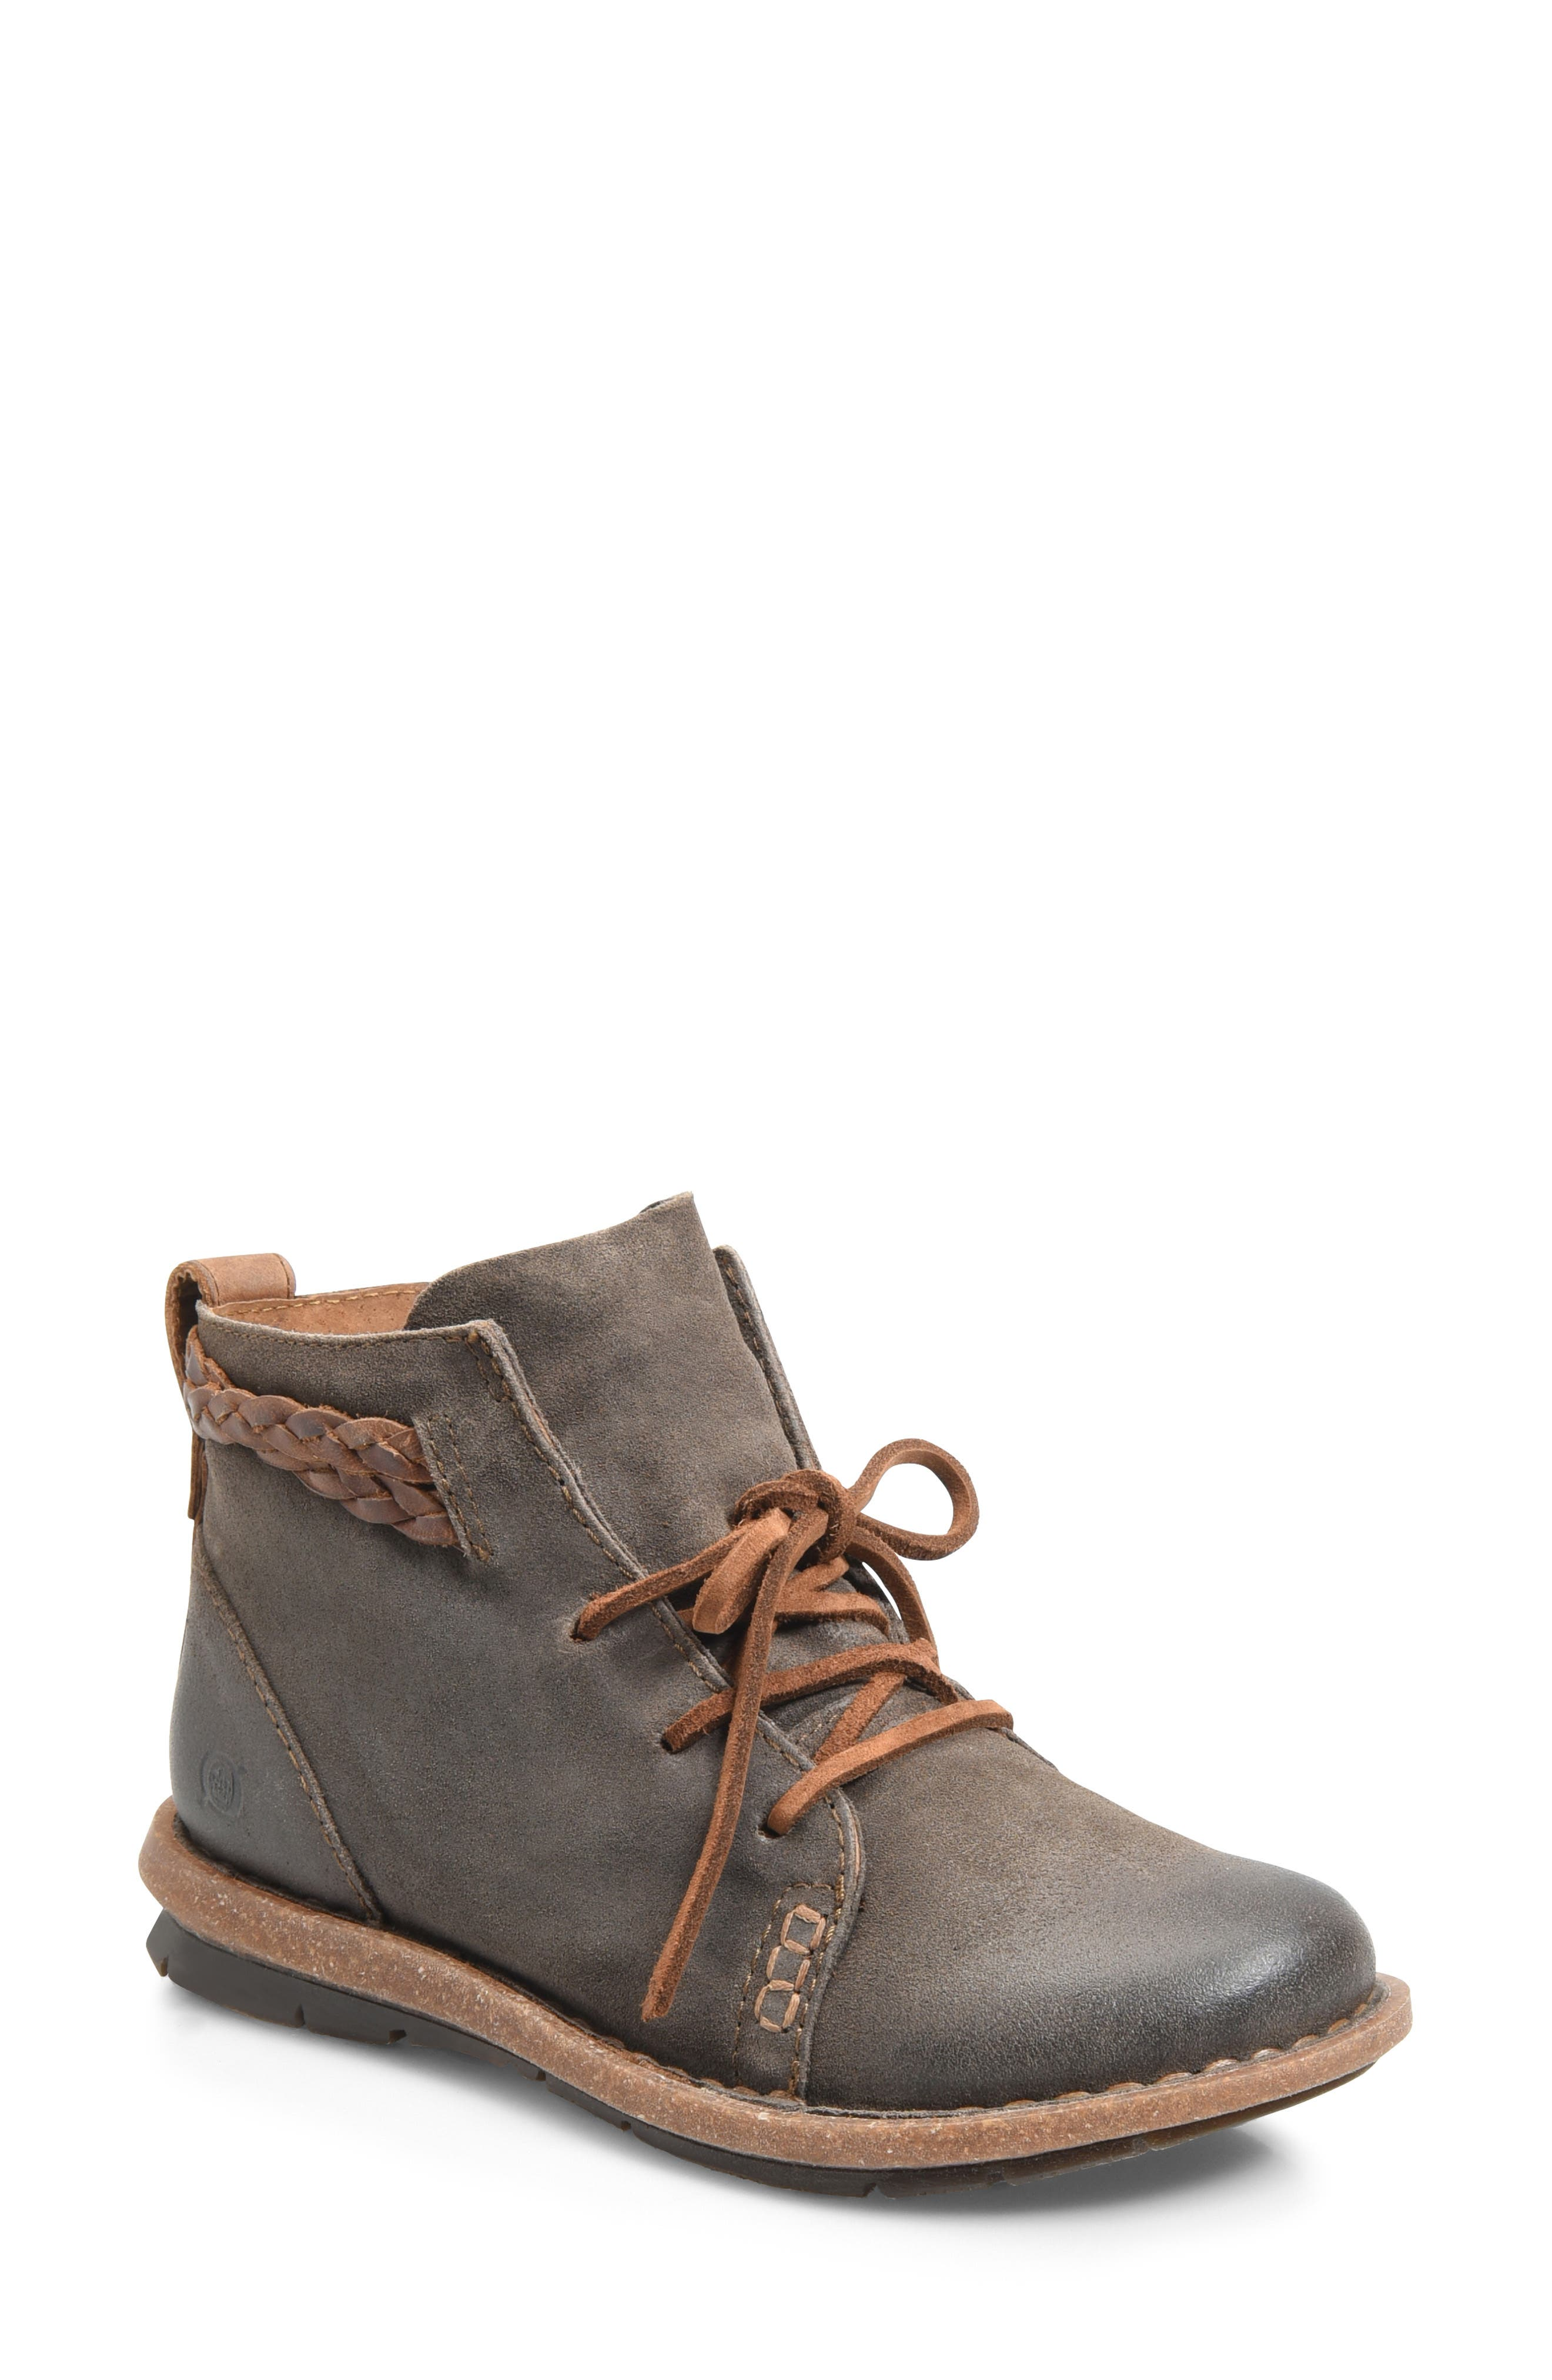 Temple Bootie,                             Main thumbnail 1, color,                             TAUPE DISTRESSED LEATHER